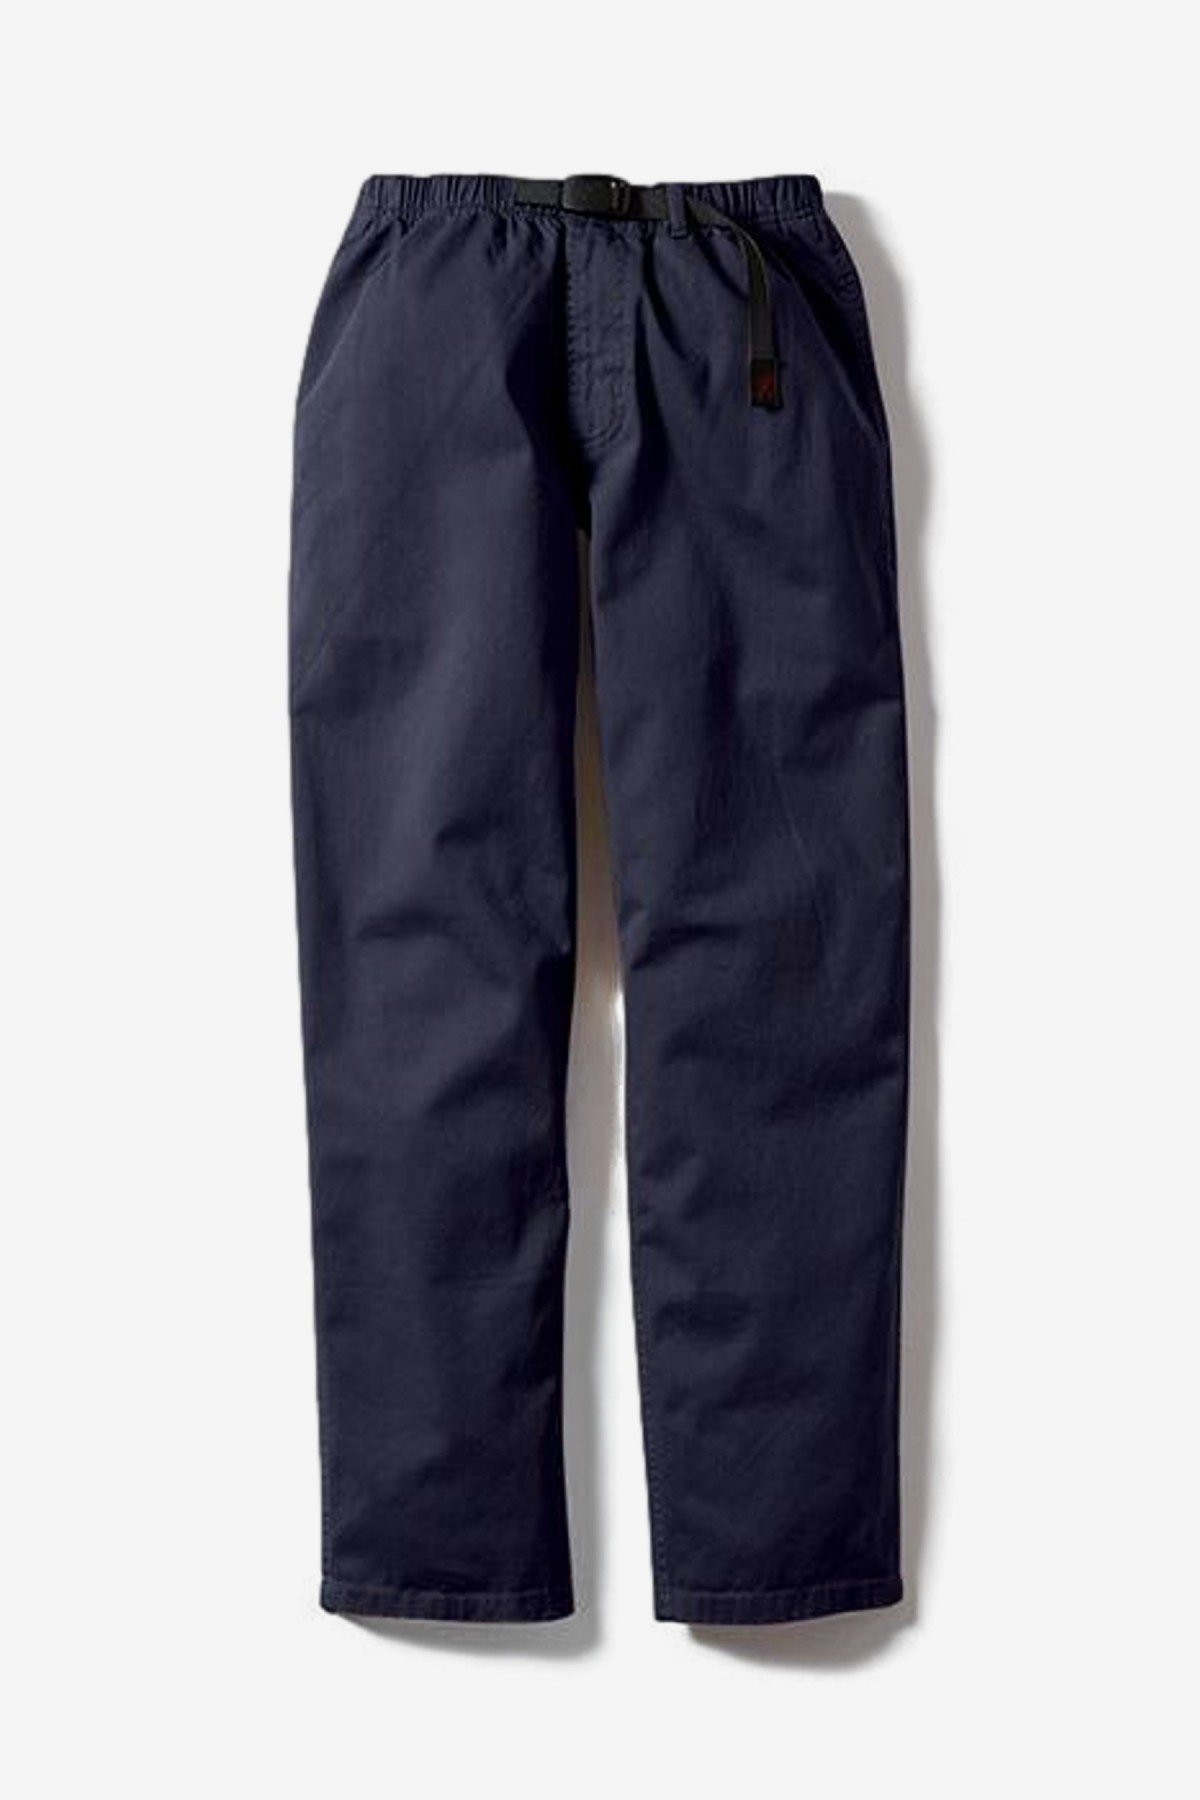 Gramicci Gramicci Pants in Double Navy